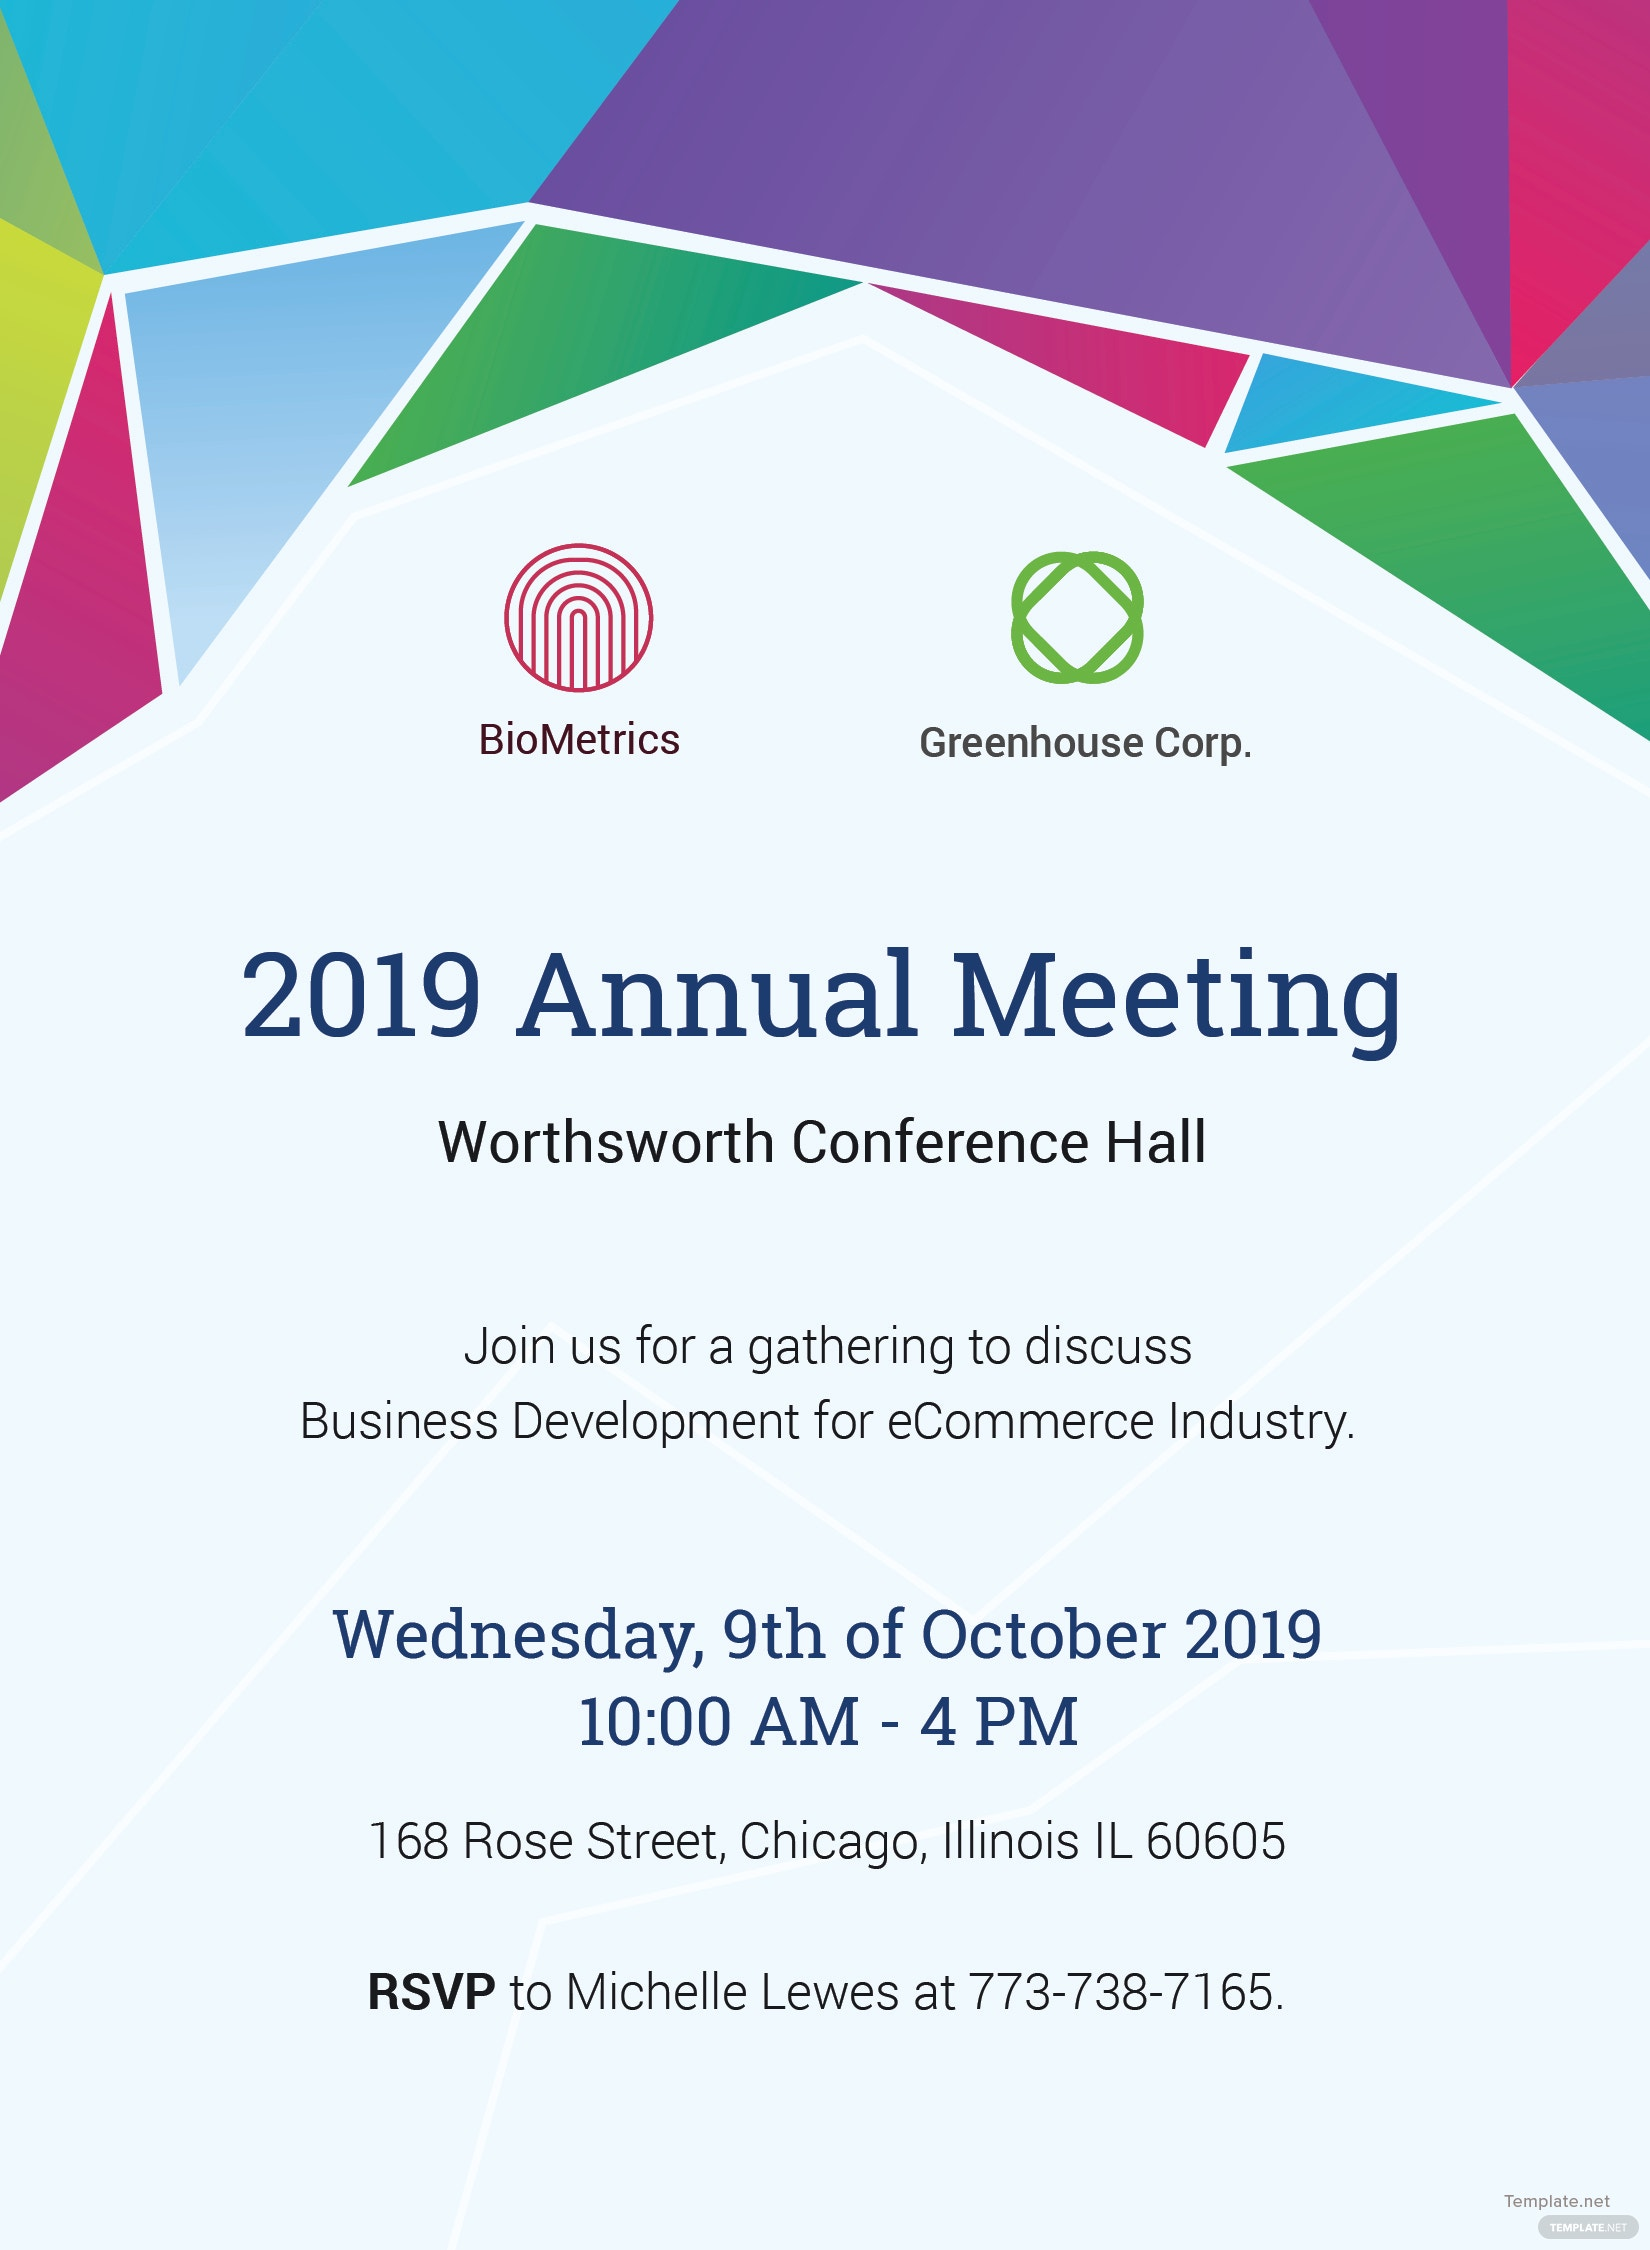 annual meeting invitation template in adobe illustrator